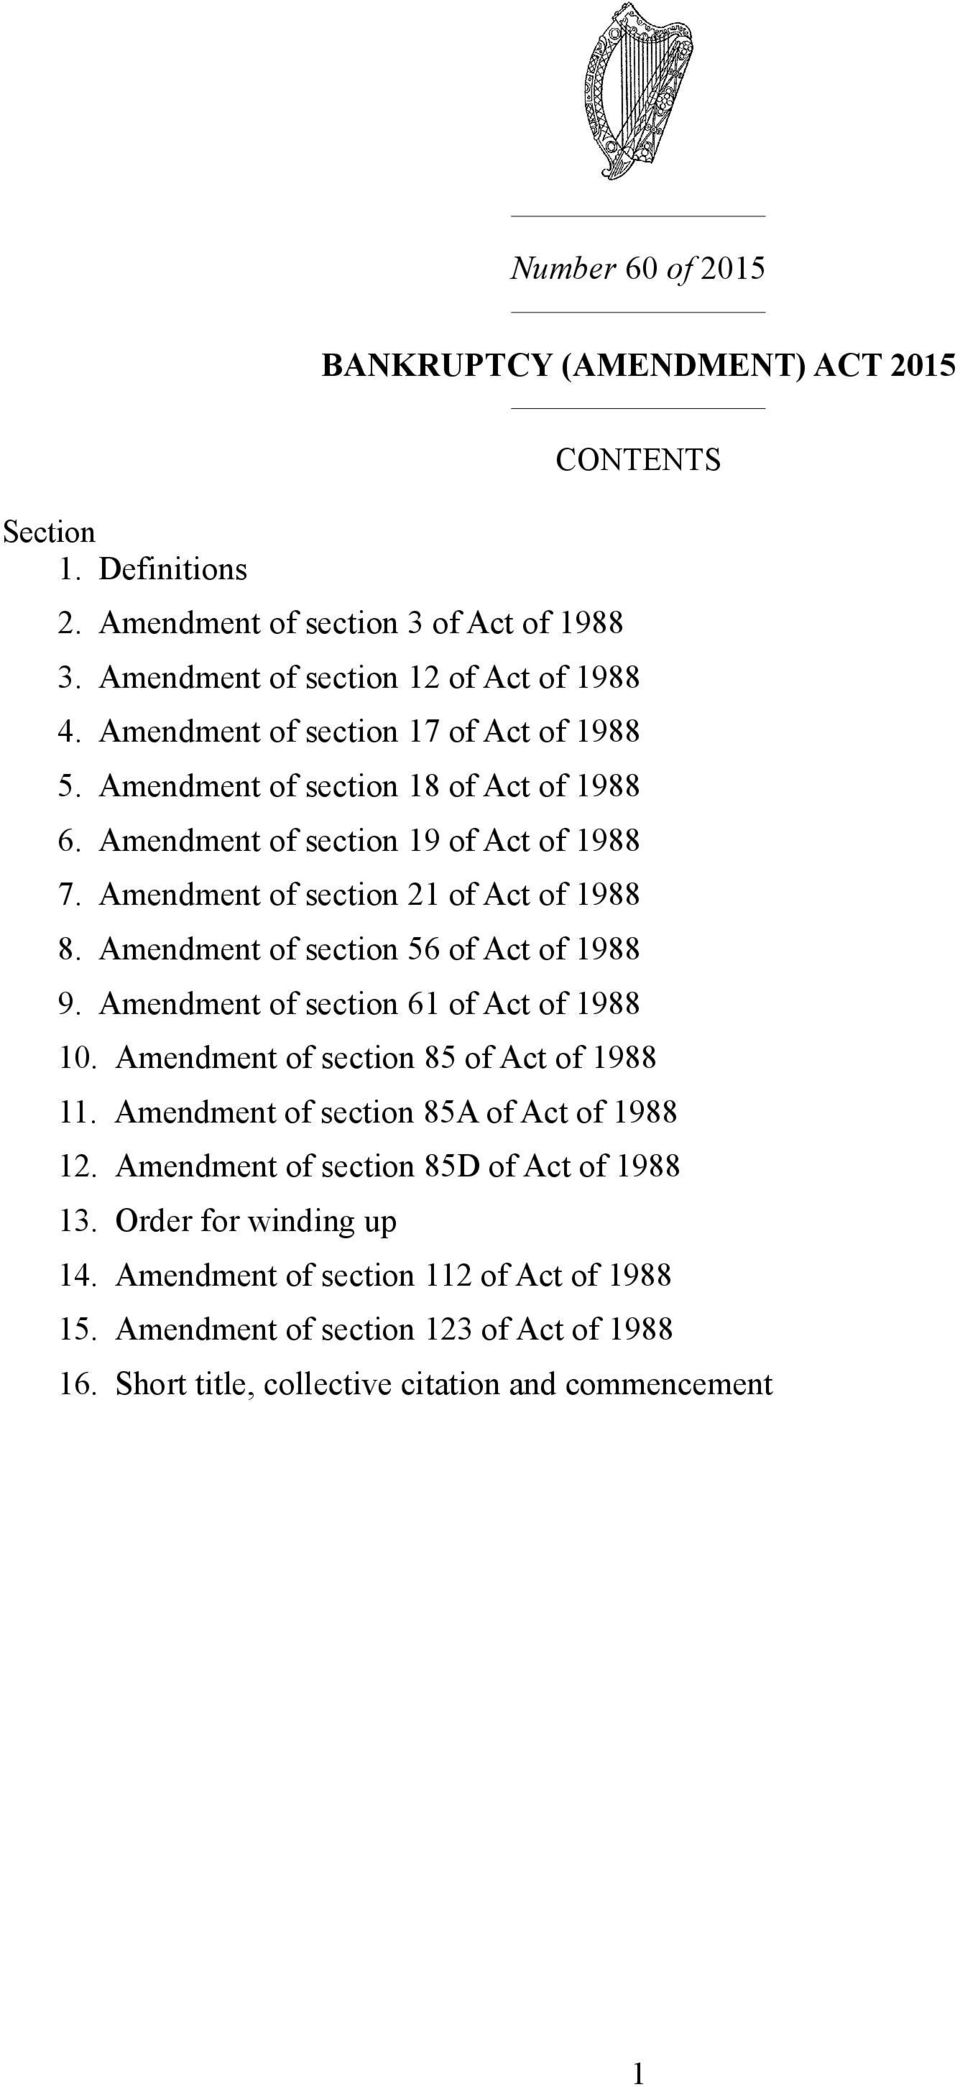 Amendment of section 56 of Act of 1988 9. Amendment of section 61 of Act of 1988 10. Amendment of section 85 of Act of 1988 11. Amendment of section 85A of Act of 1988 12.